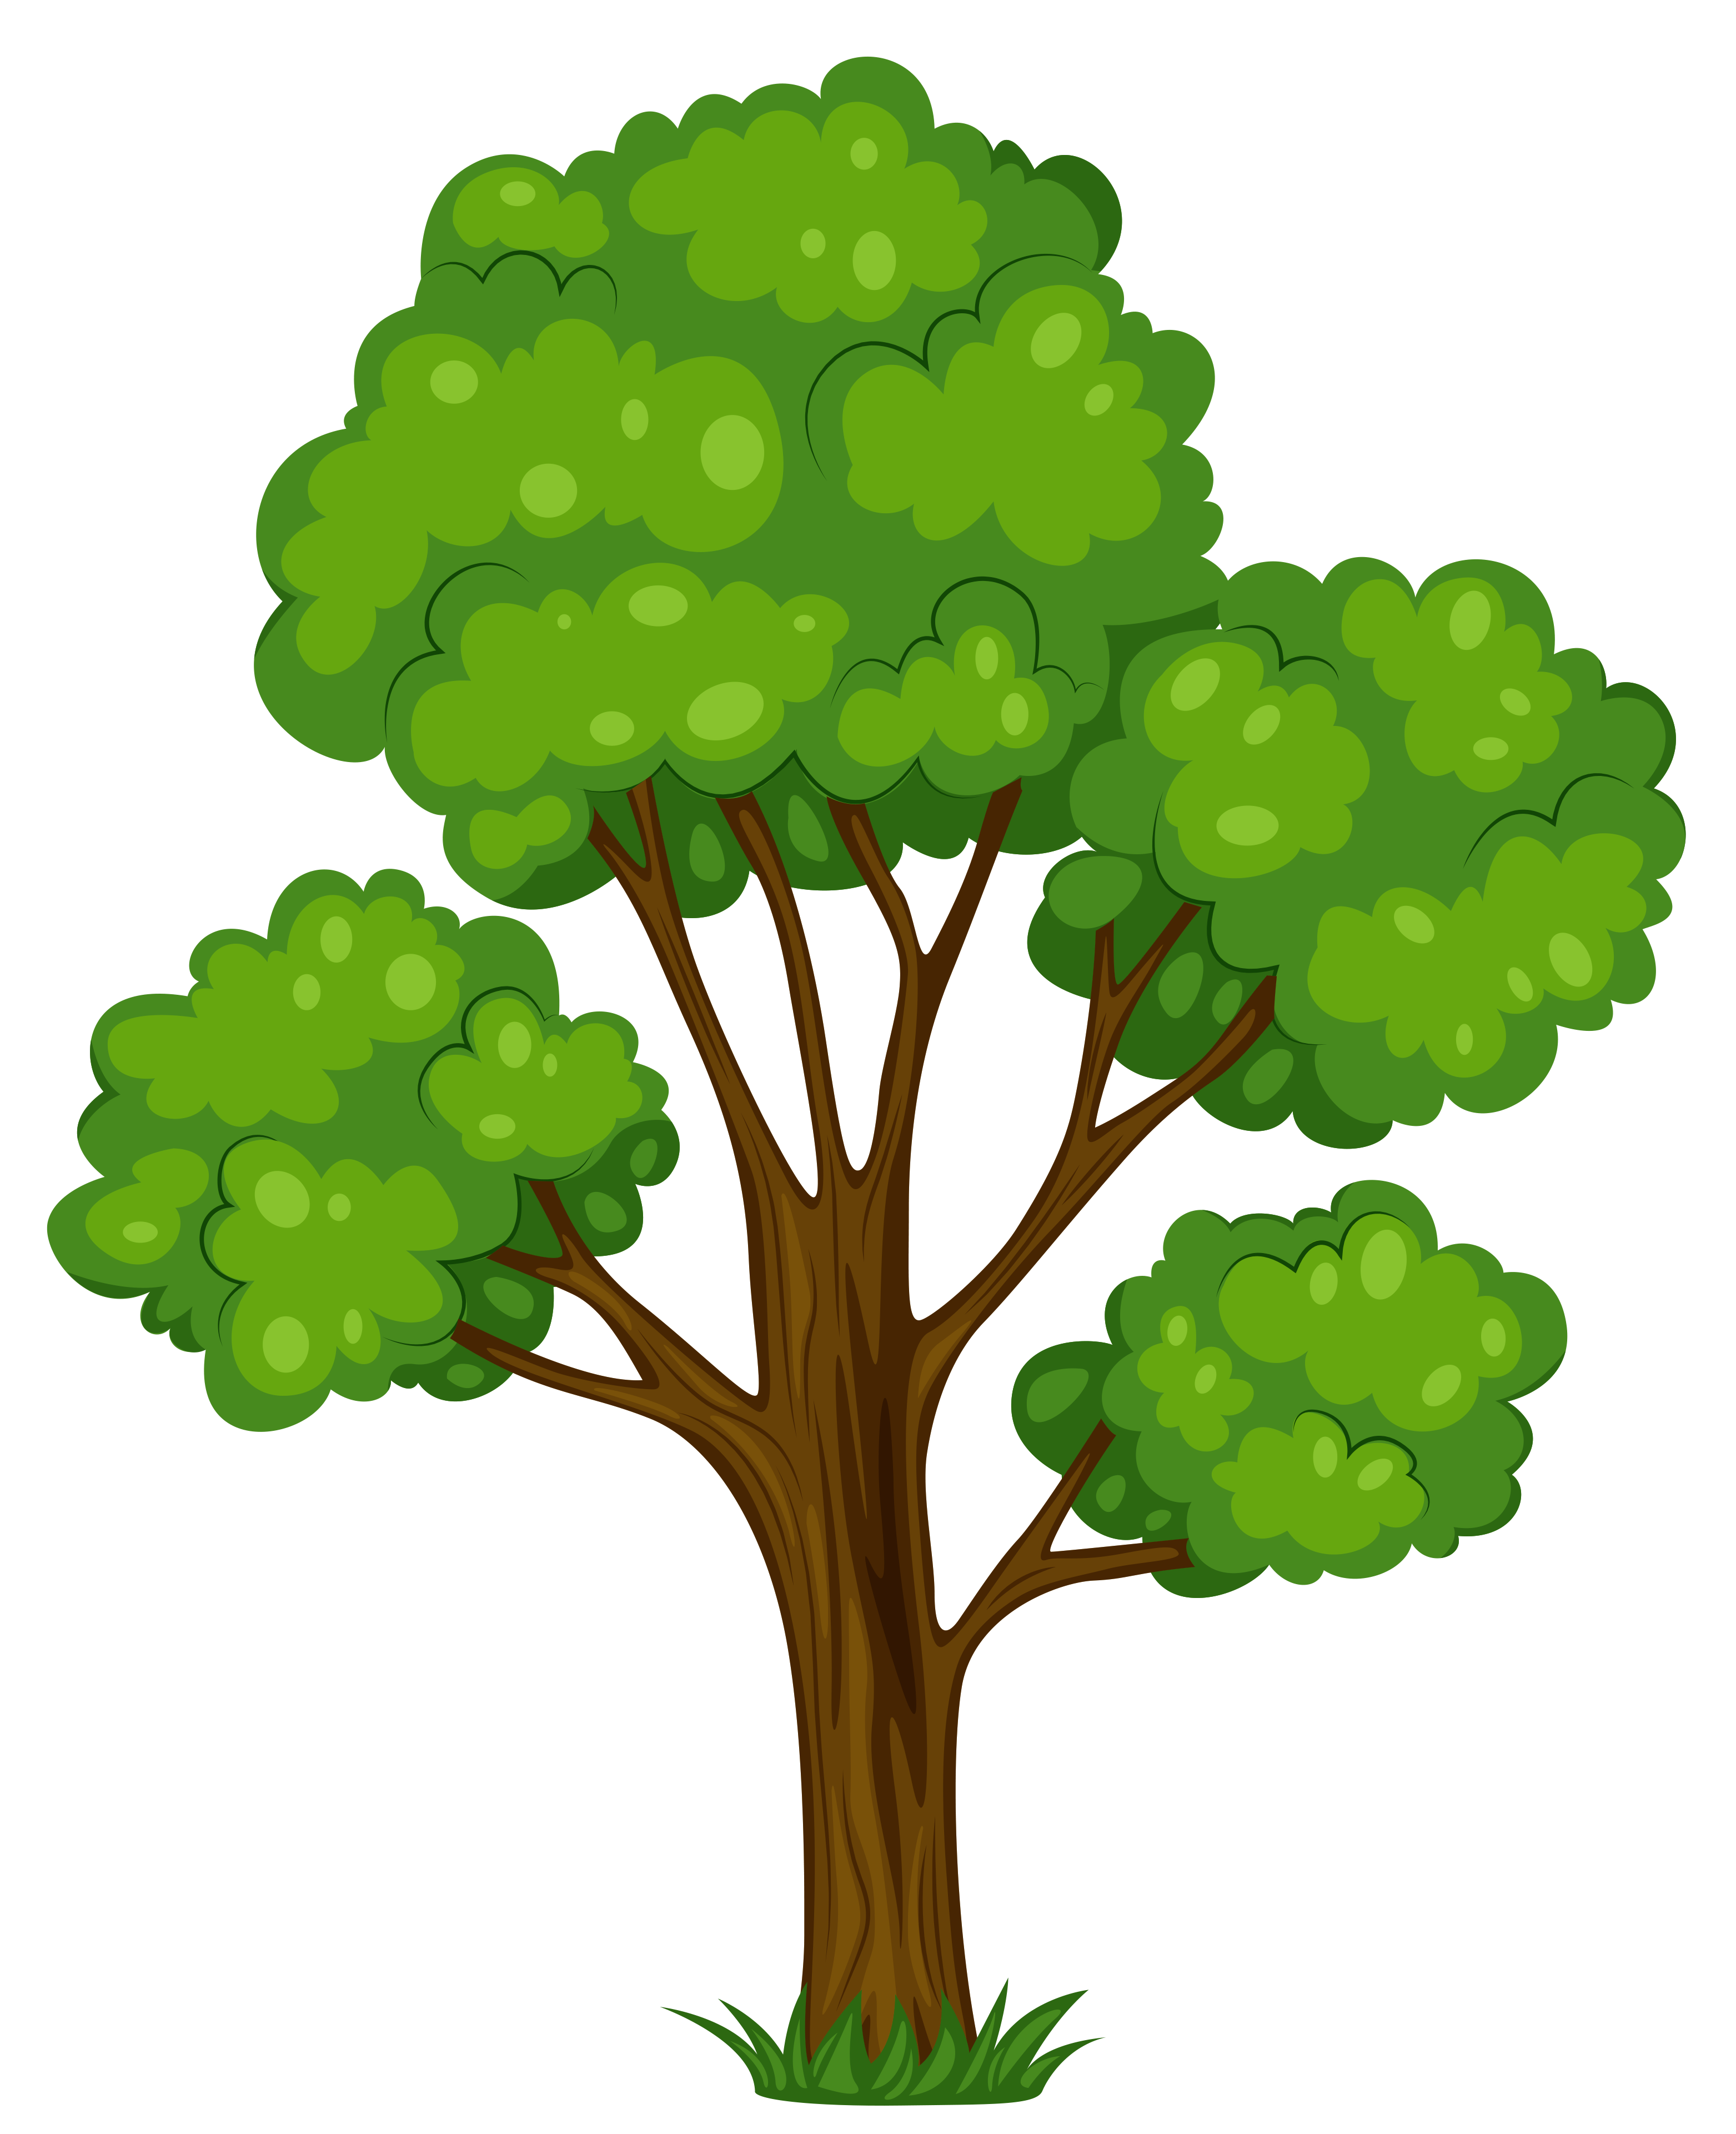 Free tree images.